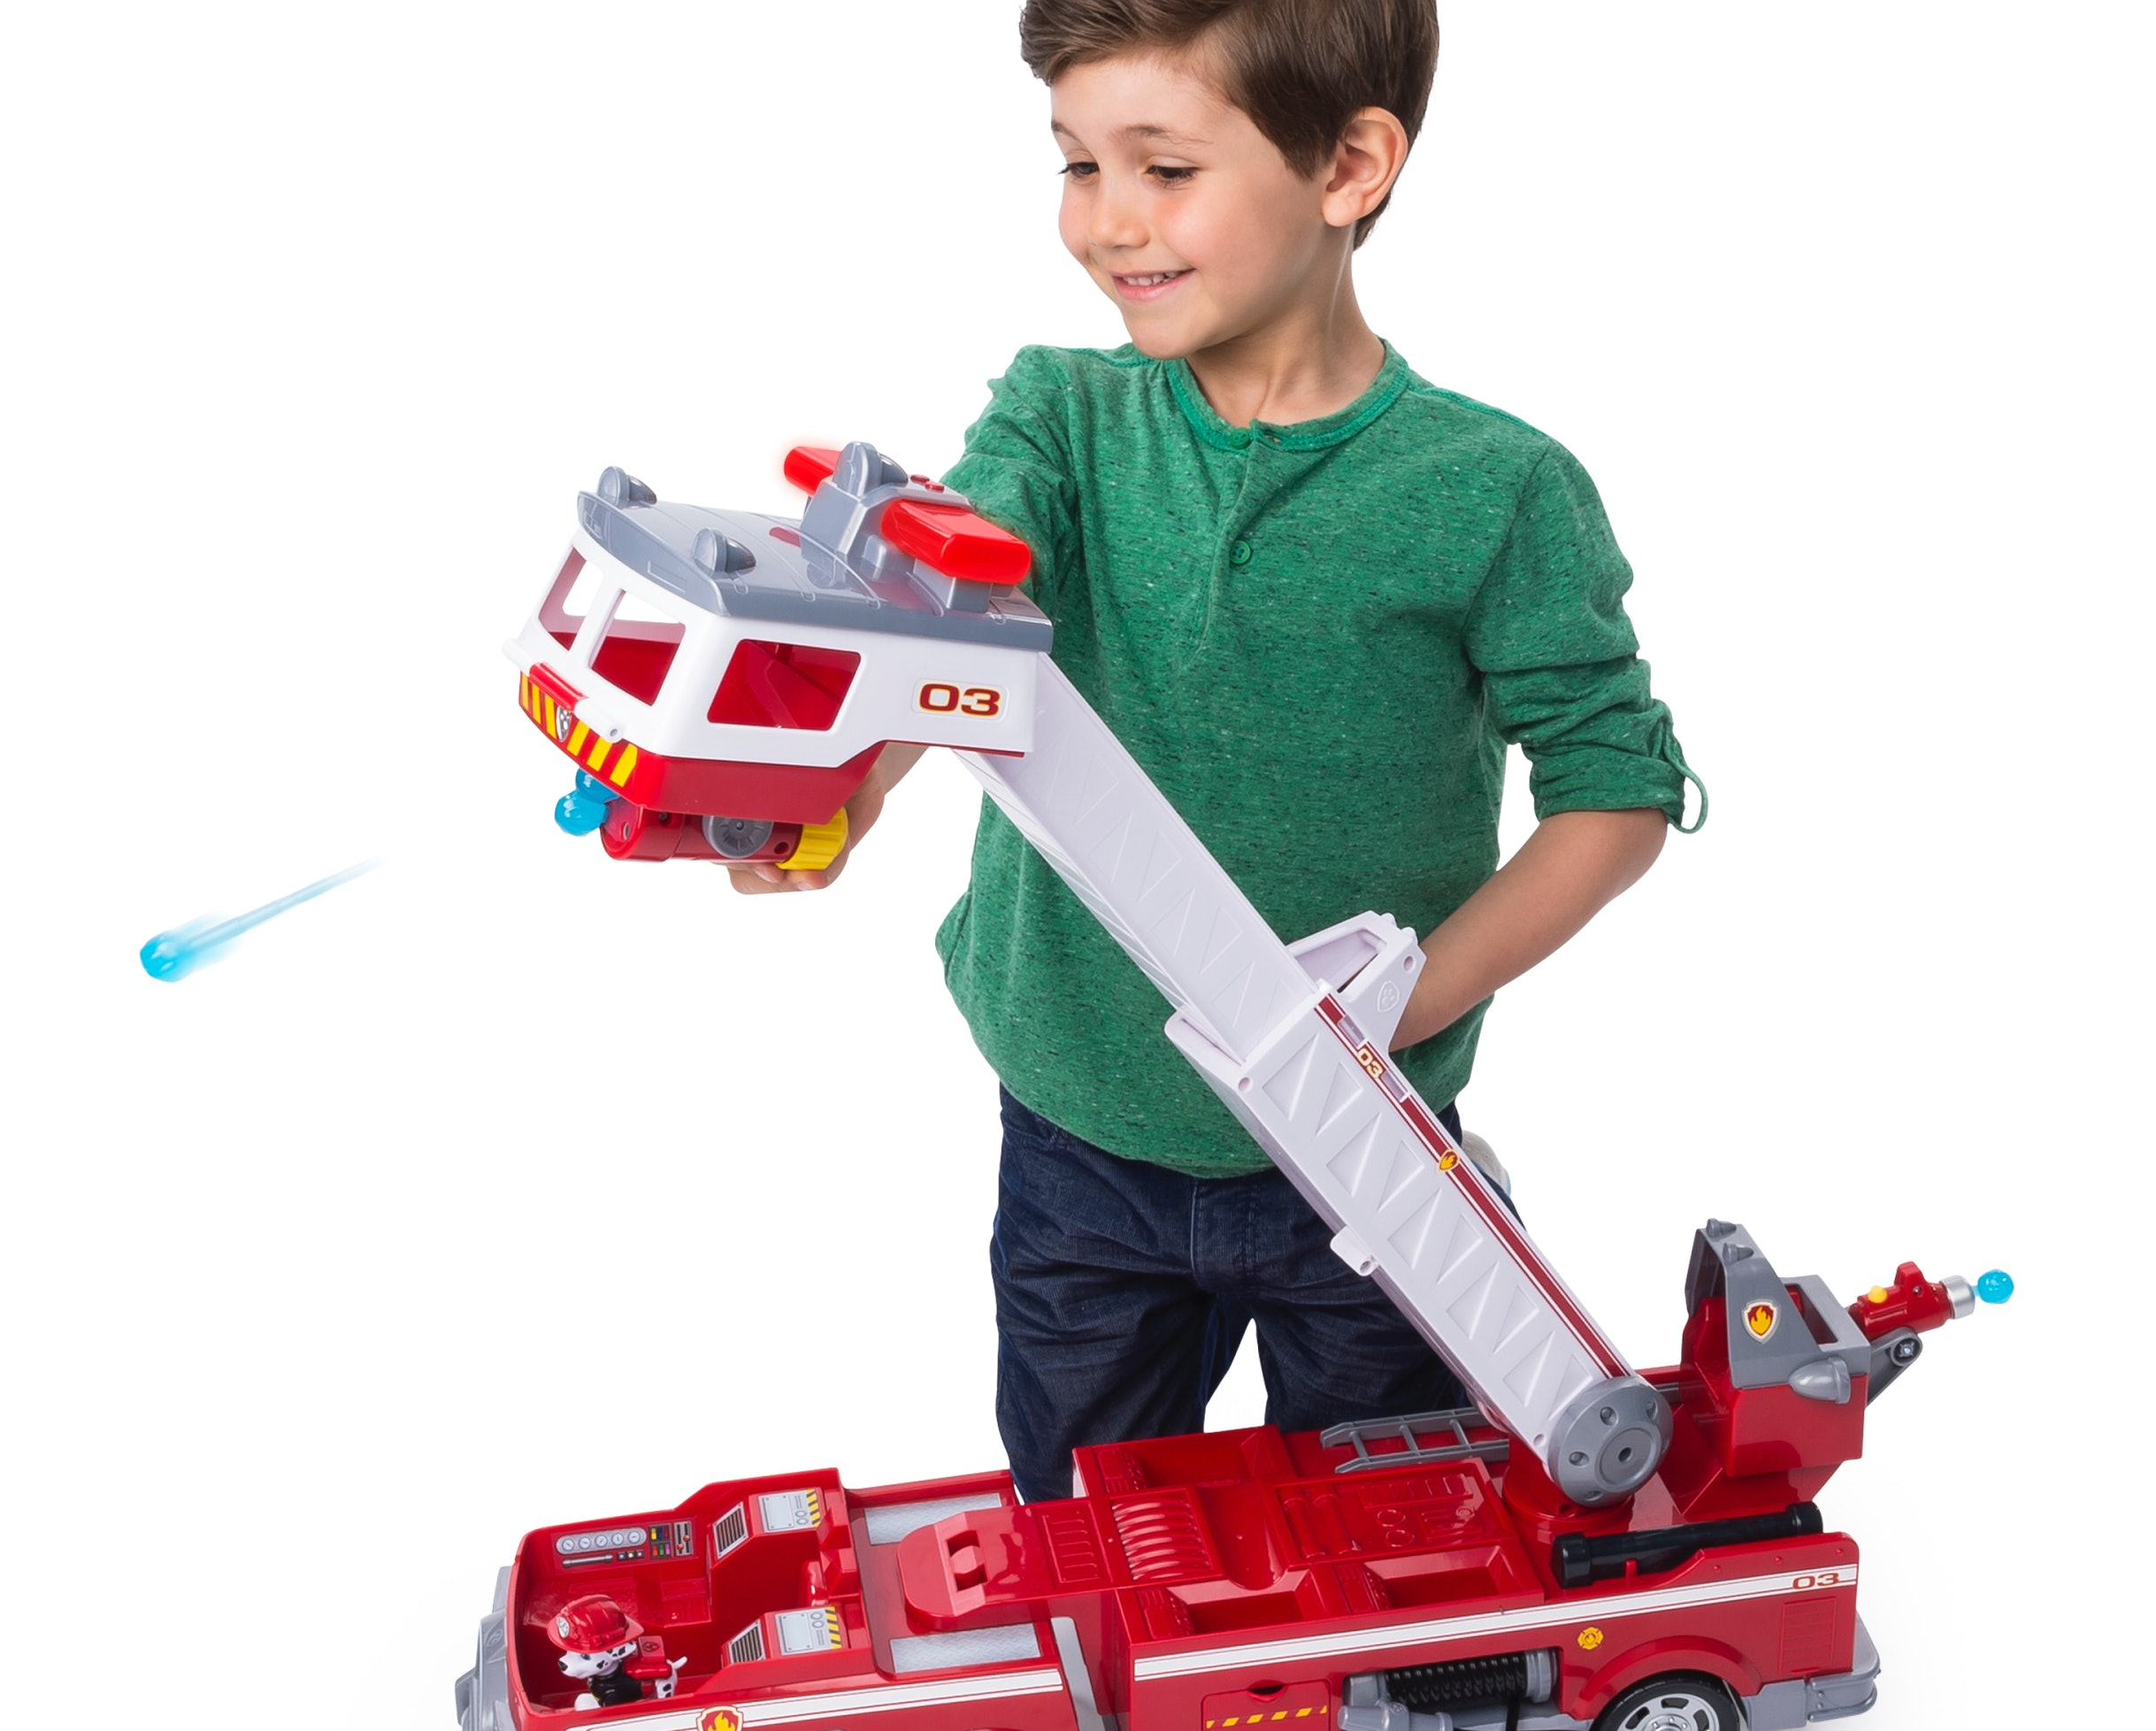 Walmart Toys Scooters For Boys : Black friday toy book ads released for walmart target toys